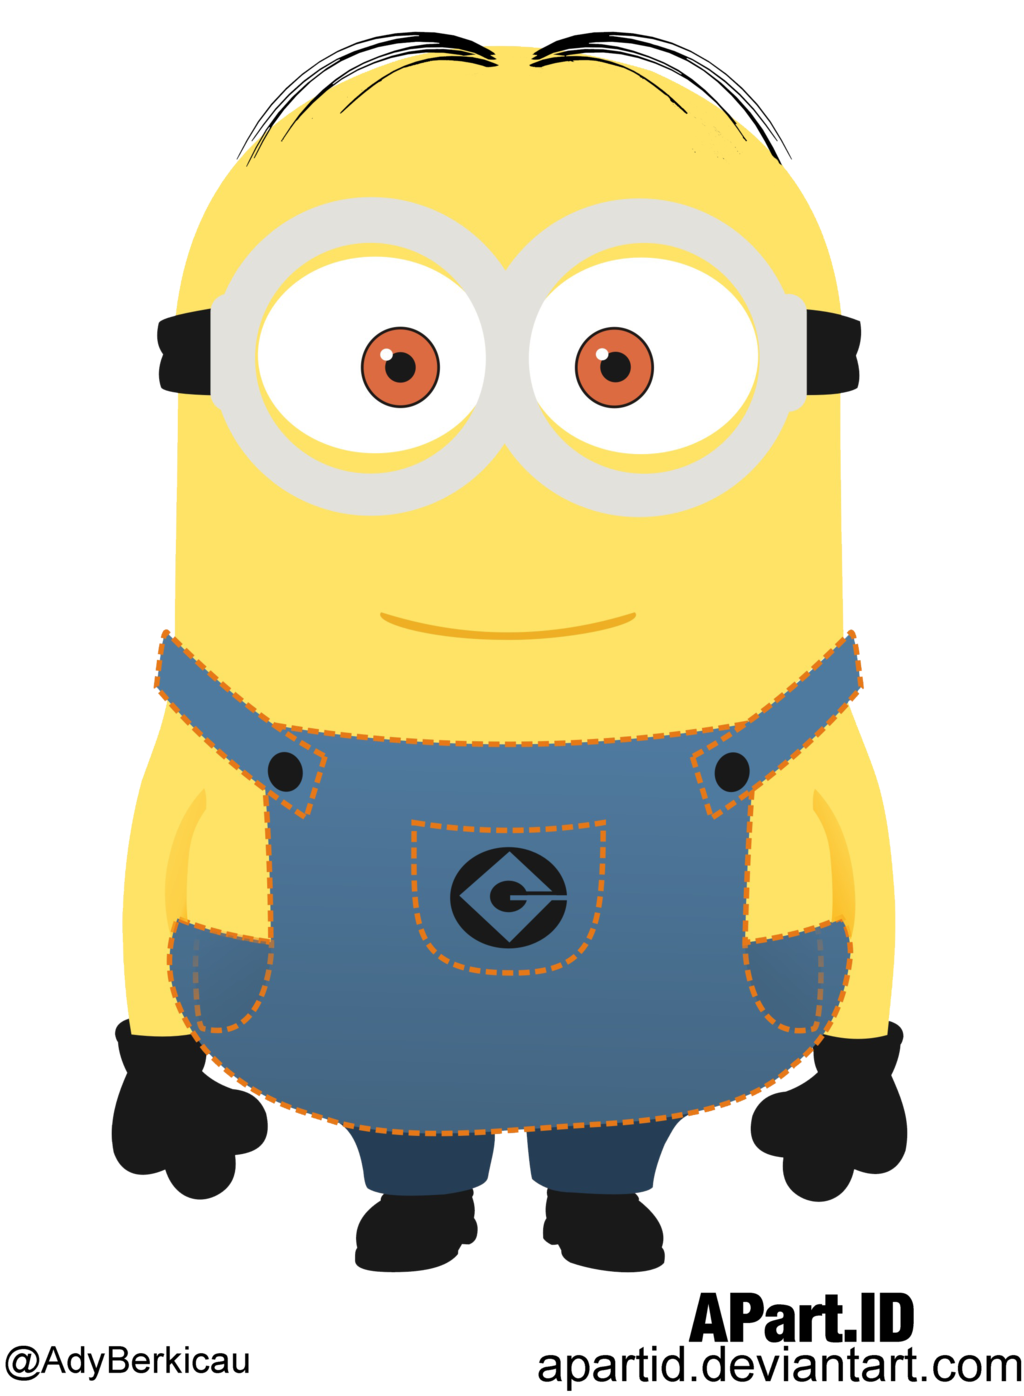 picture library stock Vector costume despicable me. Minion by apartid deviantart